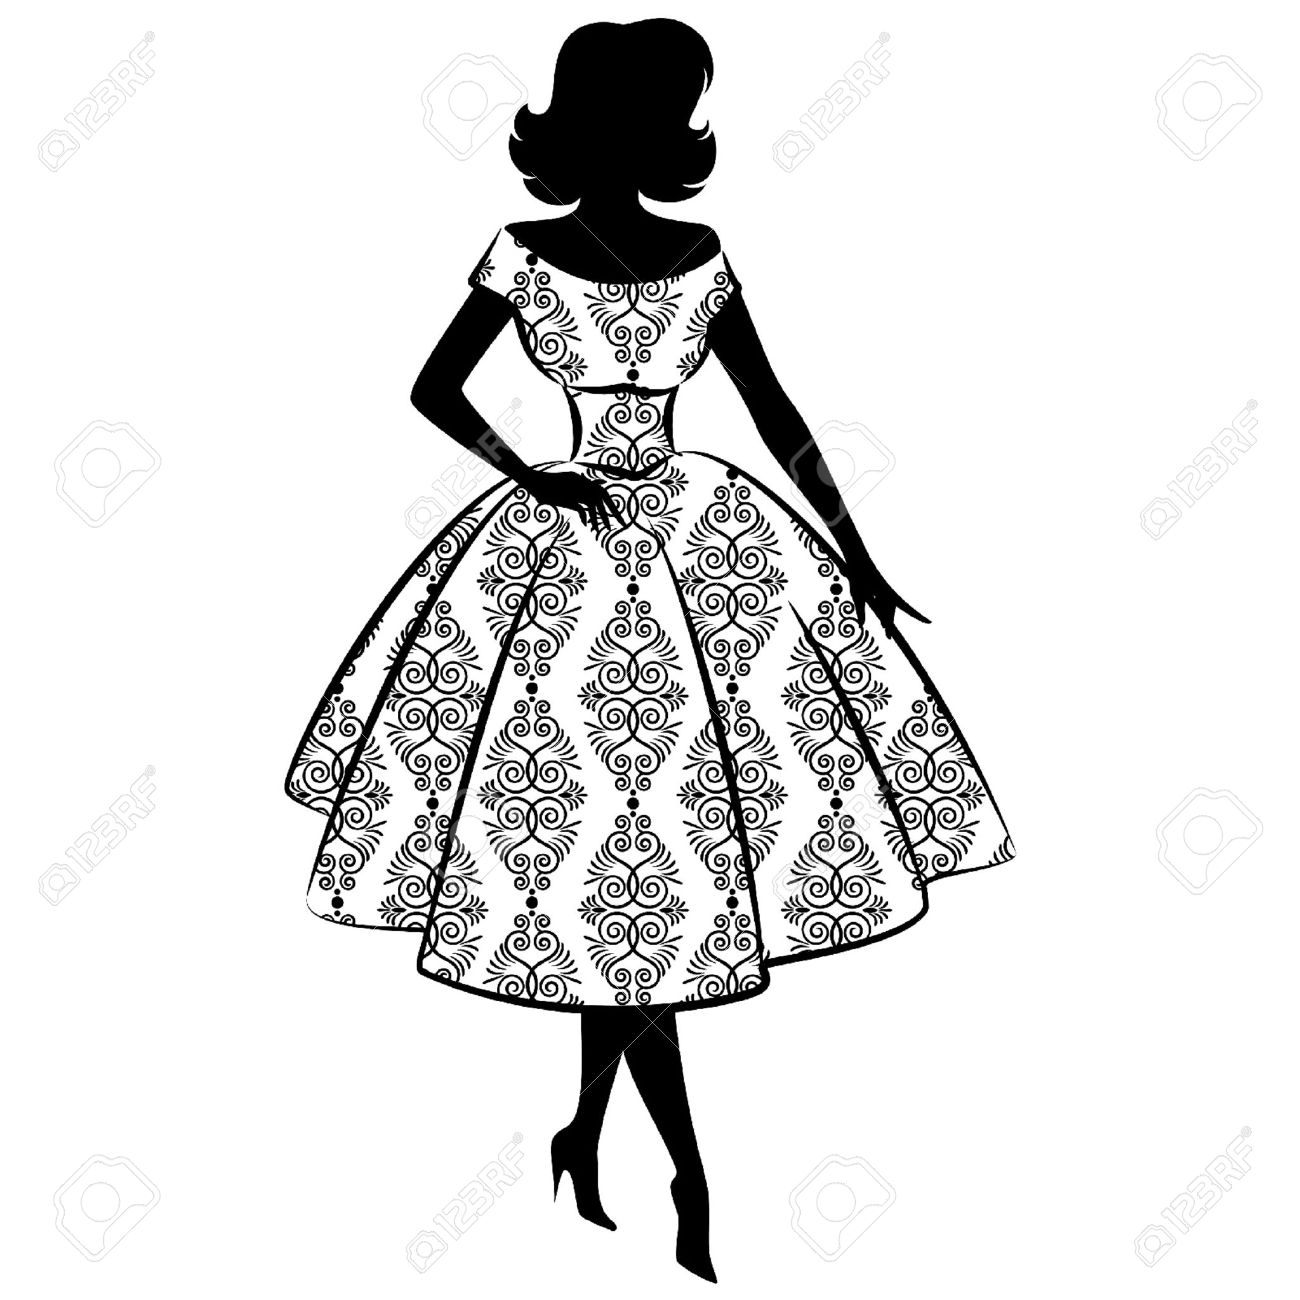 1300x1300 Vintage Silhouette Of Girl Royalty Free Cliparts, Vectors,